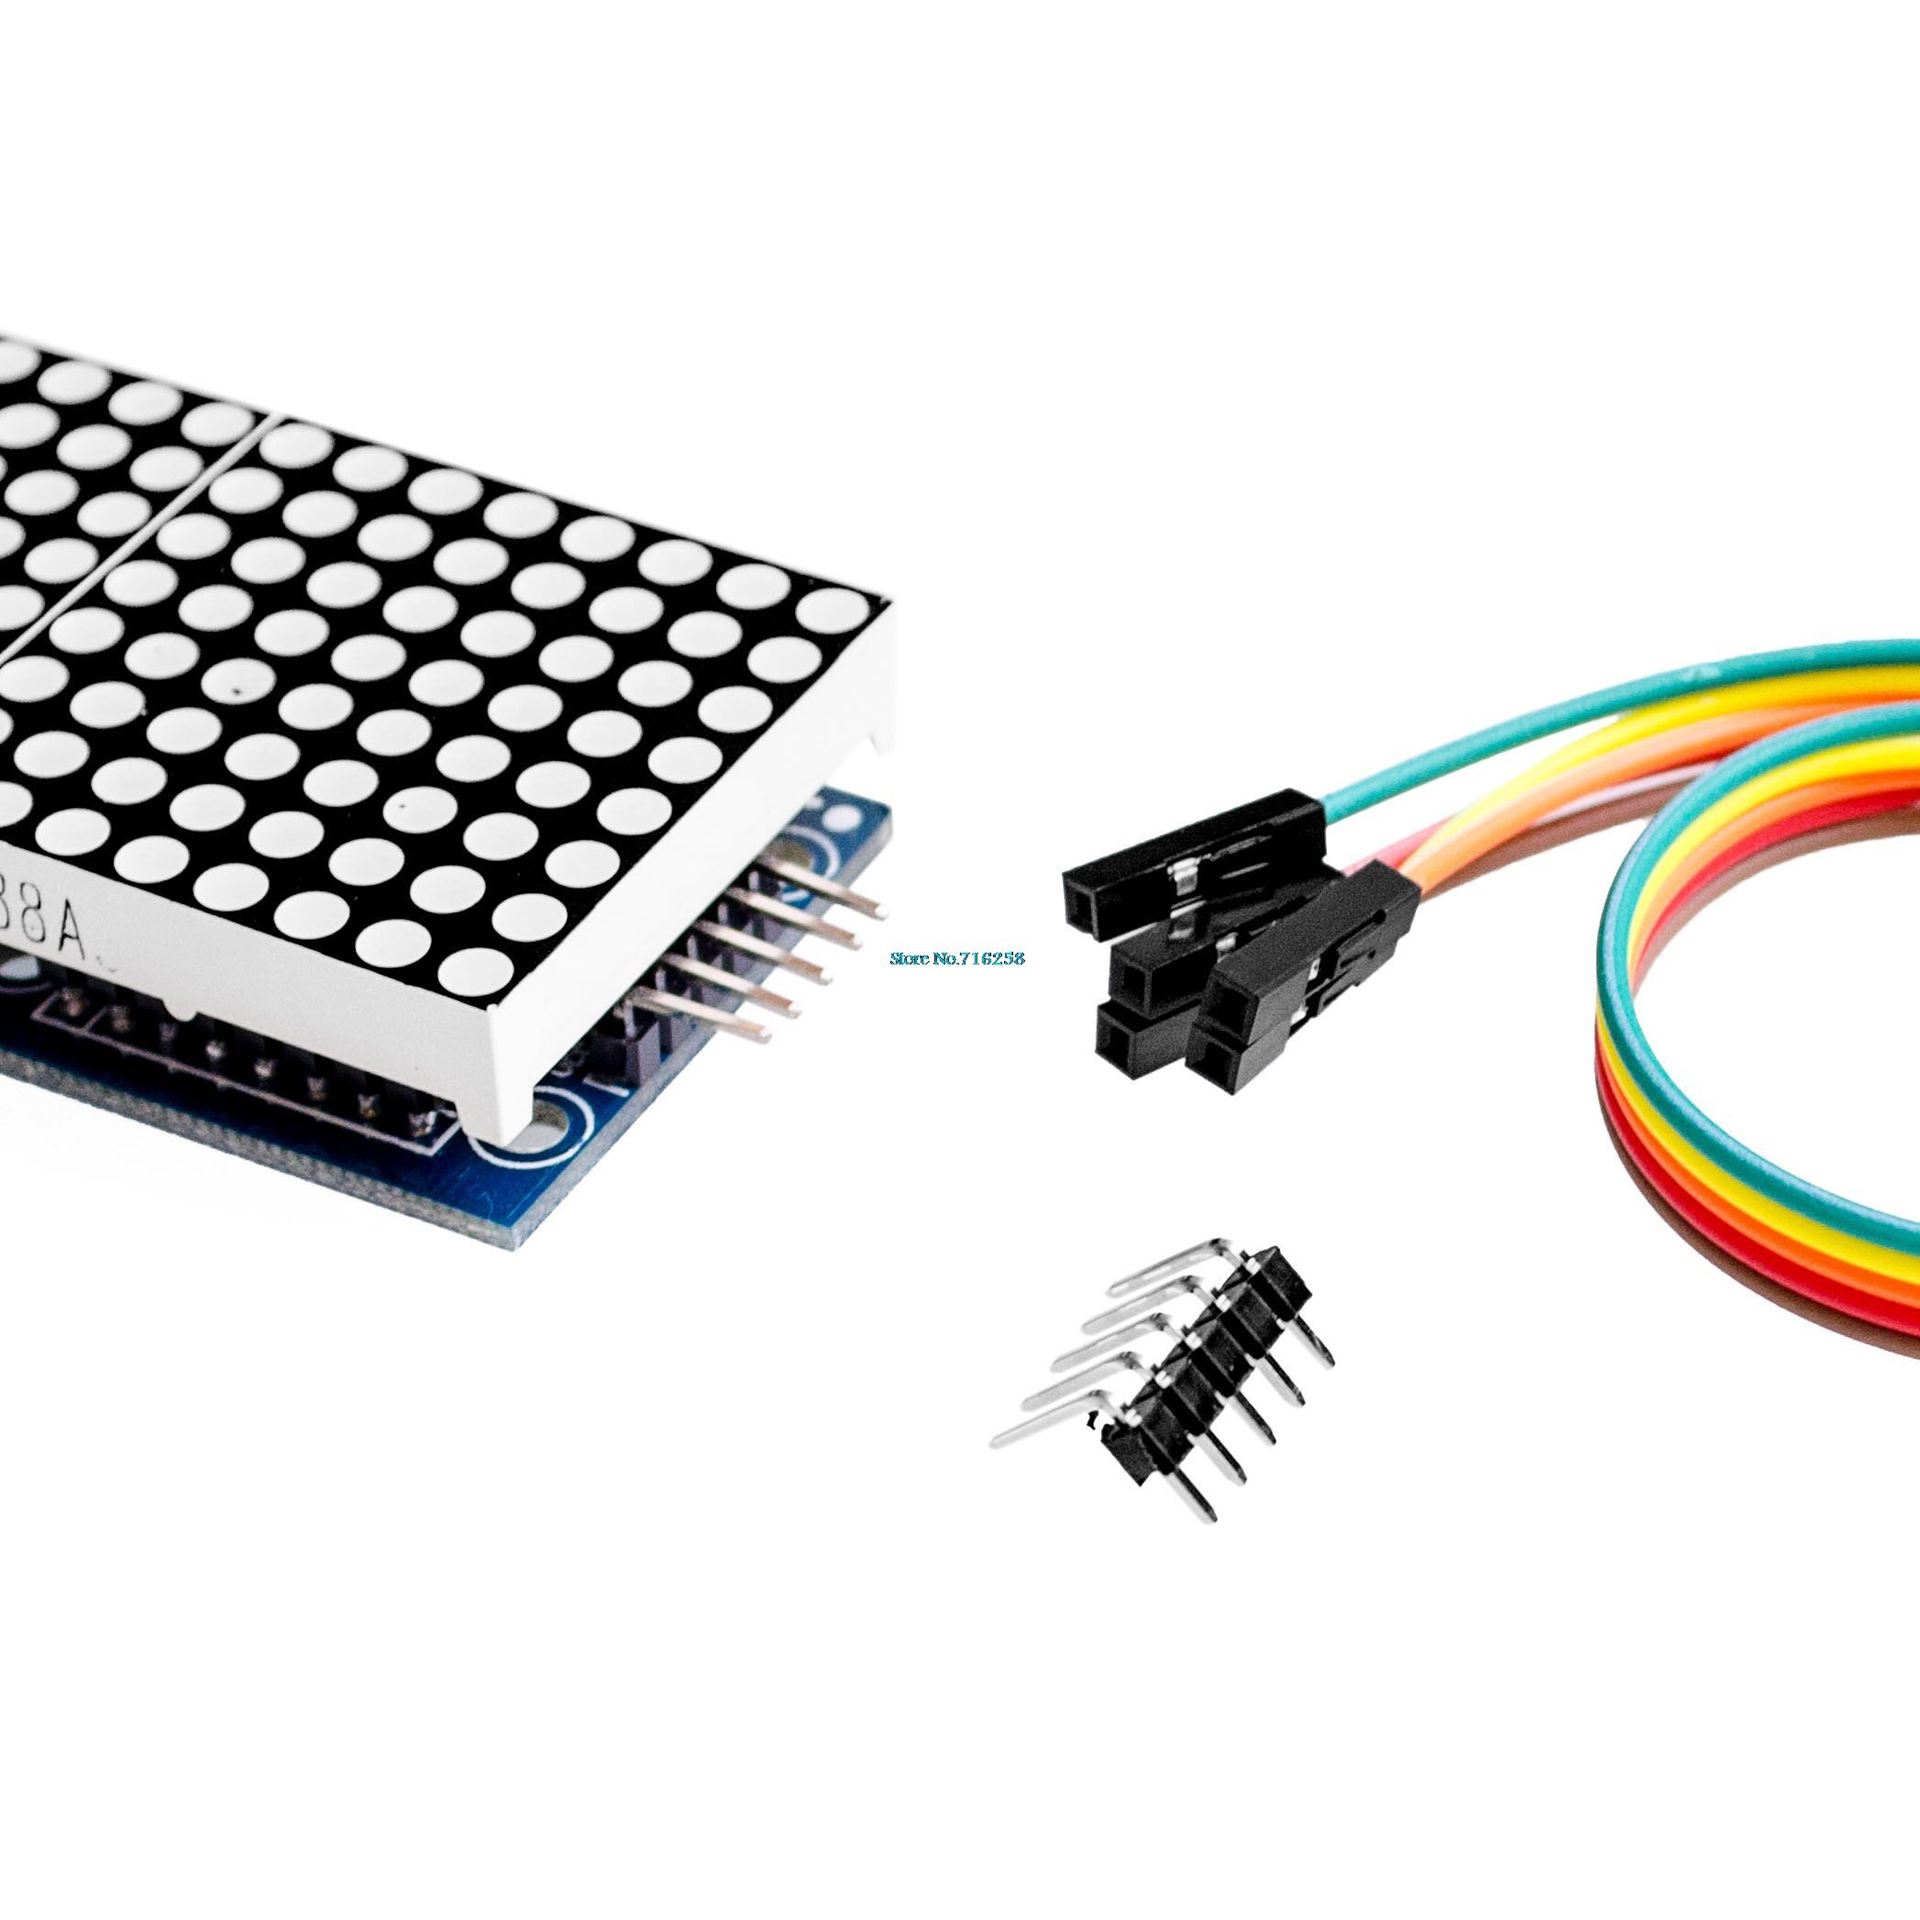 Matriz LED 8x8 MAX7219 para Arduino (4 matrices)